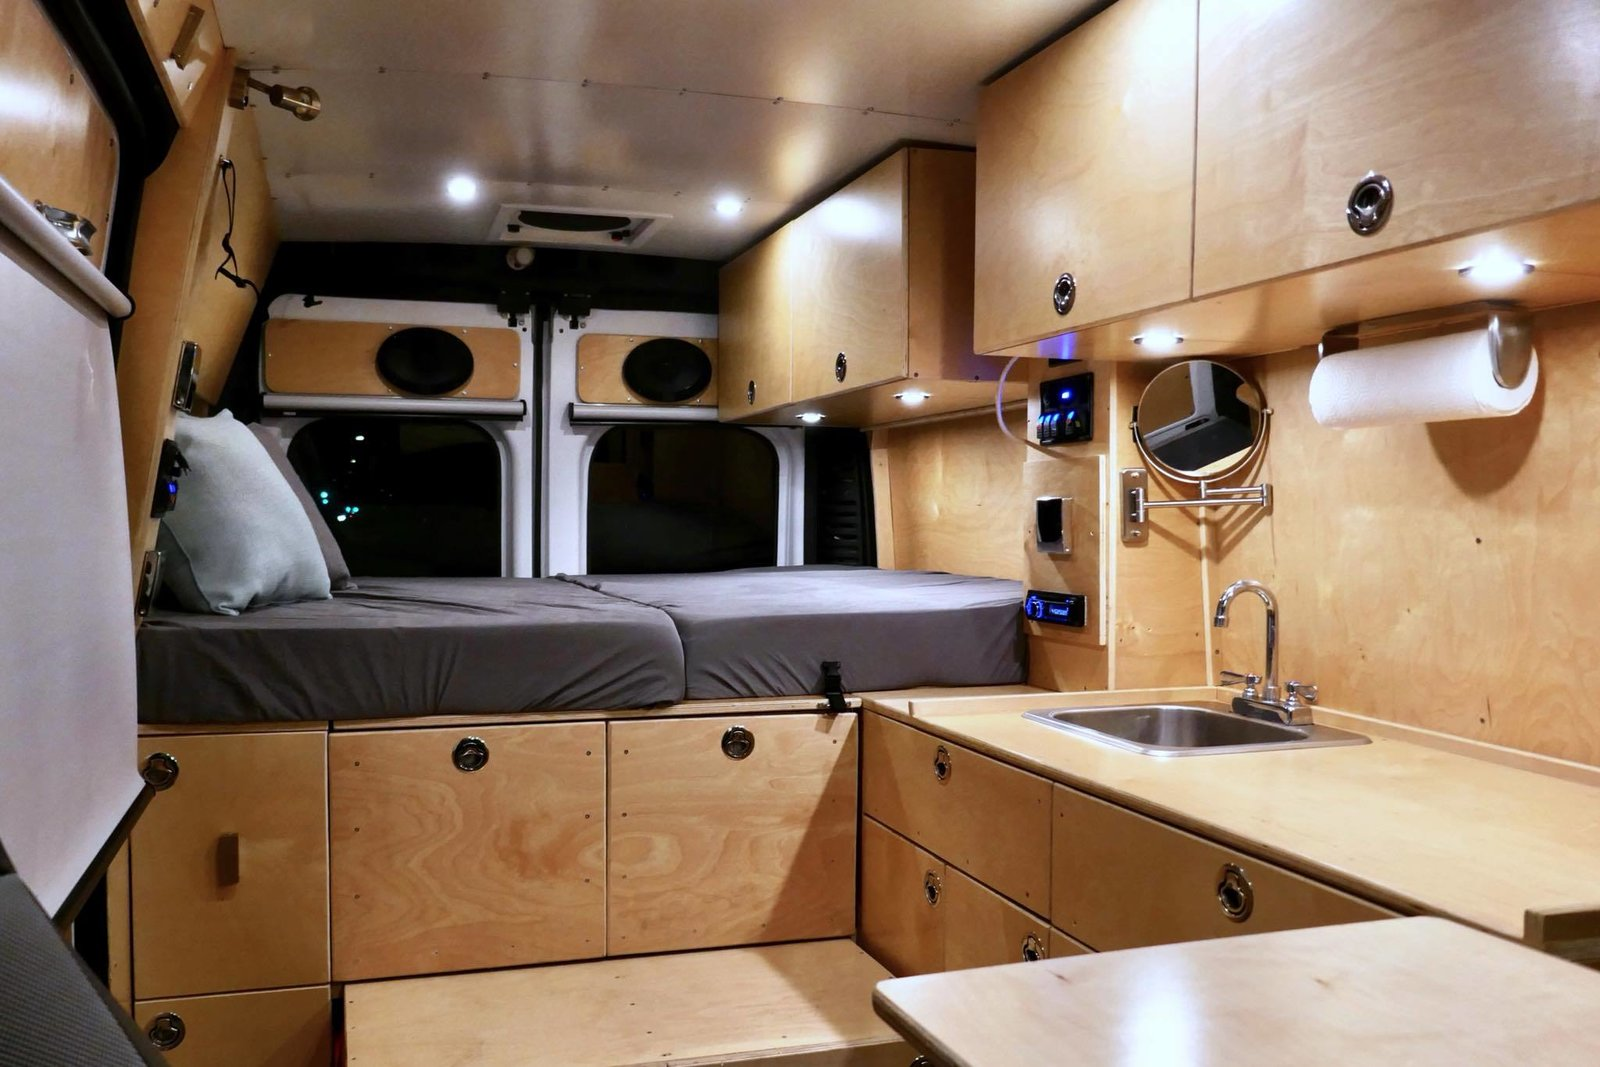 Bedroom, Recessed Lighting, and Bed The beautiful wood interiors have a customized utilitarian feel. The bed in the back can be raised so that the space can also be used as an office.     Photo 2 of 14 in 7 Van Conversion Companies That Will Do the Legwork For You